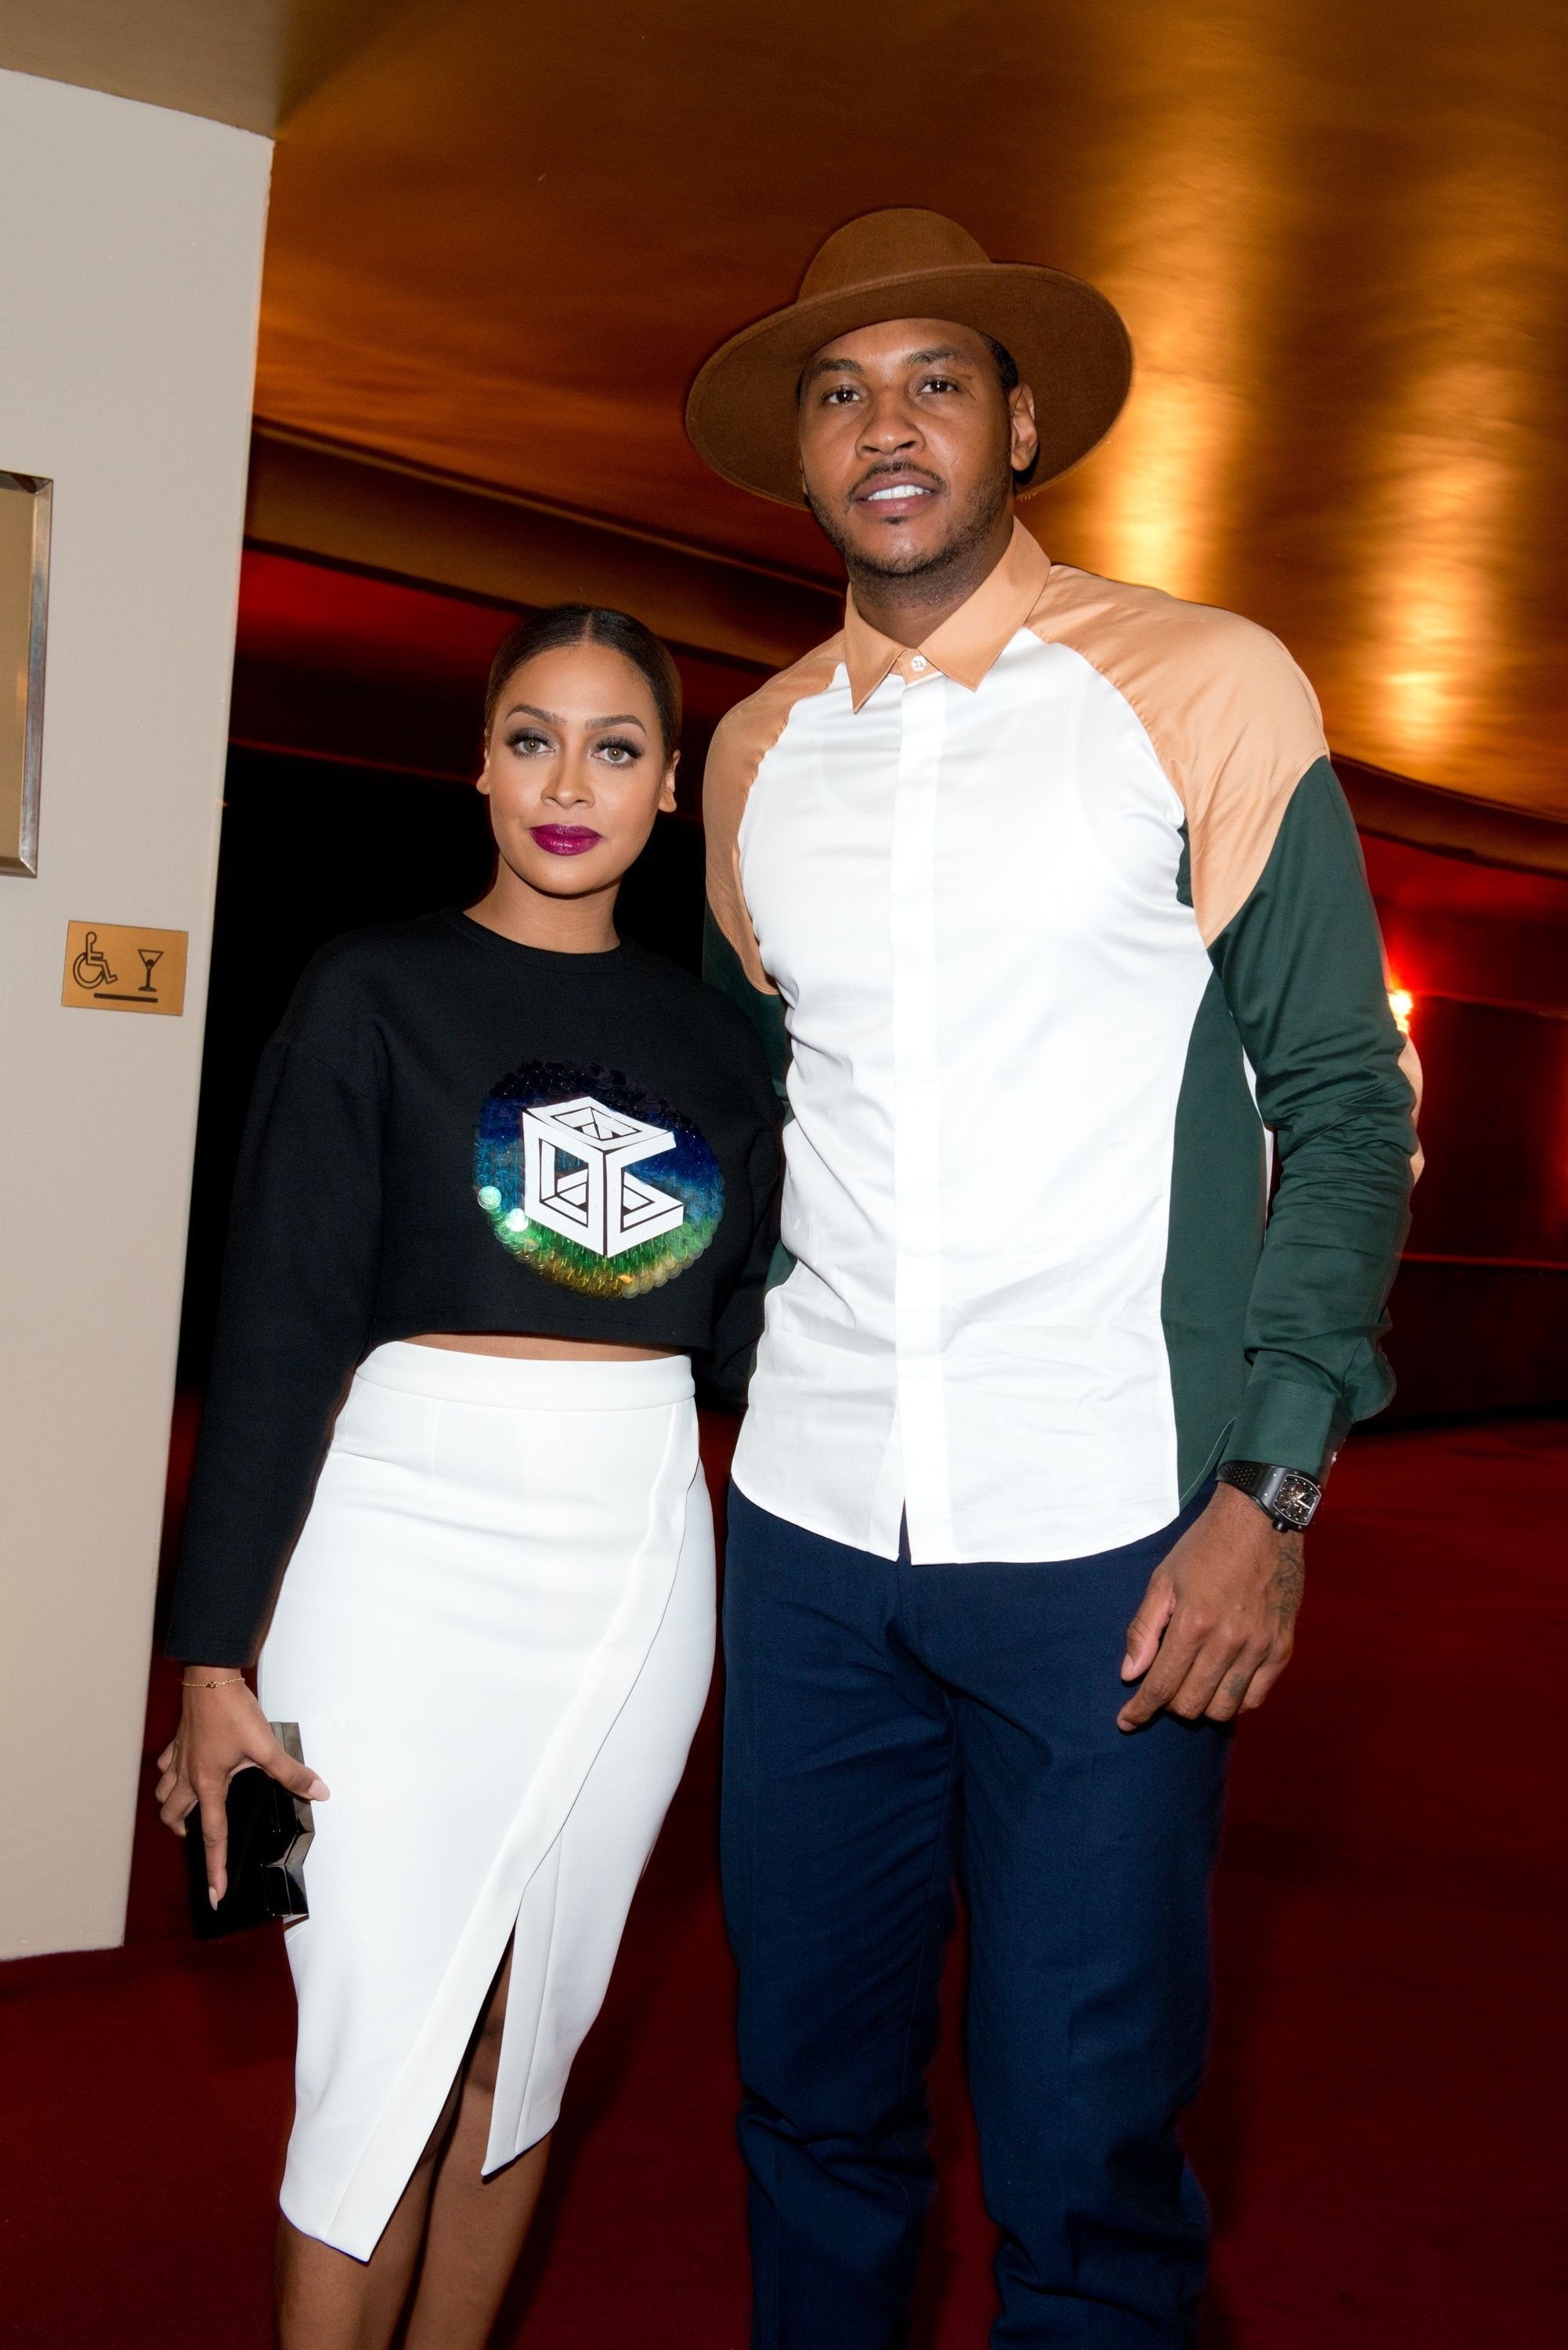 La La Anthony and Carmelo Anthony at the Mercedes-Benz Fashion Week Spring 2015 on September 7, 2014 in New York. | Photo: Getty Images